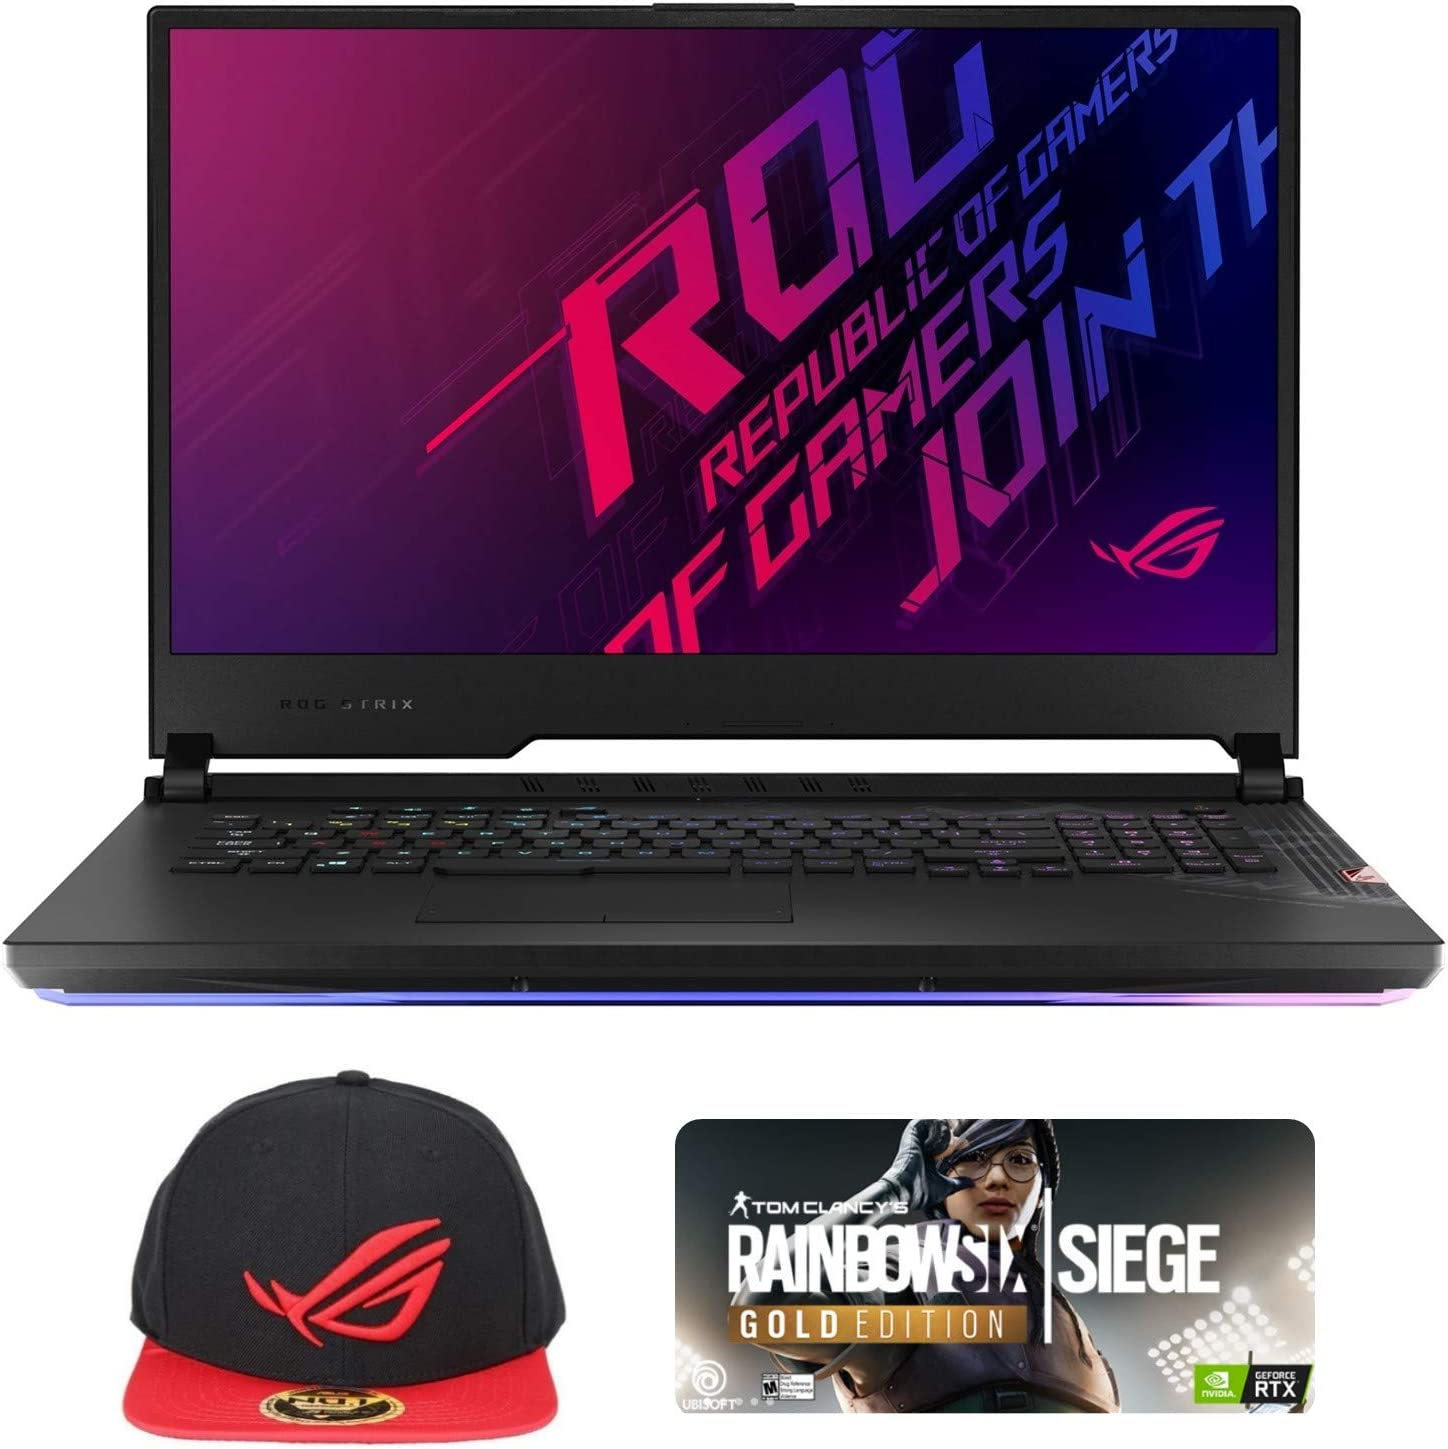 "ASUS ROG Strix Scar 17 G732LXS-XS94 Enthusiast (i9-10980HK, 32GB RAM, 2TB NVMe SSD, RTX 2080 Super 8GB, 17.3"" FHD 300Hz 3ms, Windows 10 Pro) Gaming Notebook"